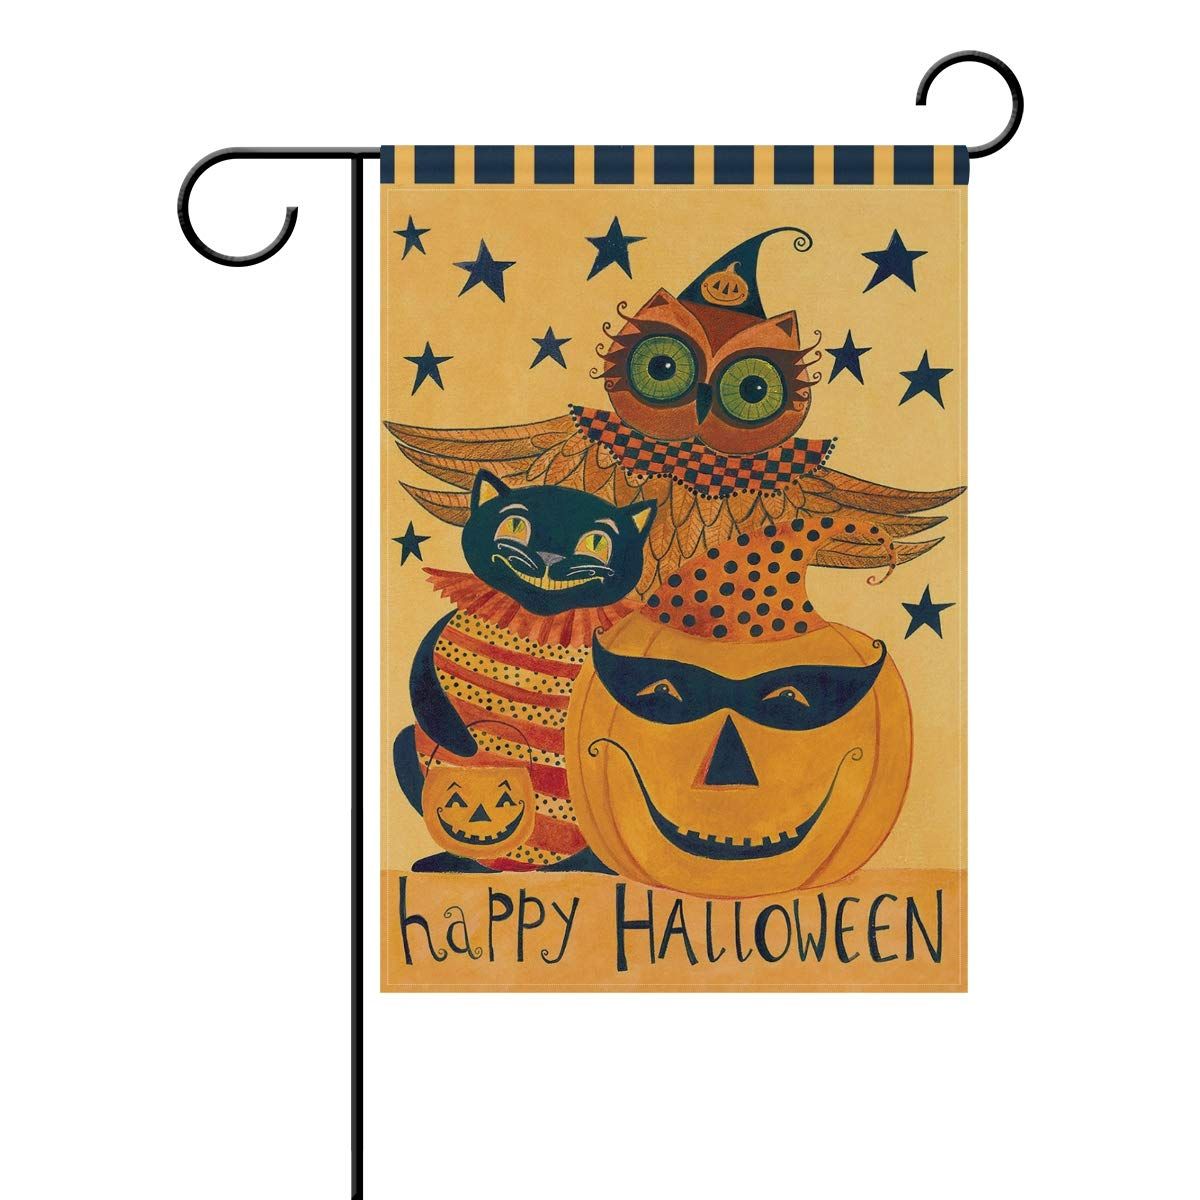 Wamika Happy Halloween Pumpkin Owl Black Cat Double Sided Garden Yard Flag 12'' x 18'', Halloween Trick Treat Fall Festive Autumn Decorative Garden Flag Banner Outdoor Home Decor Party